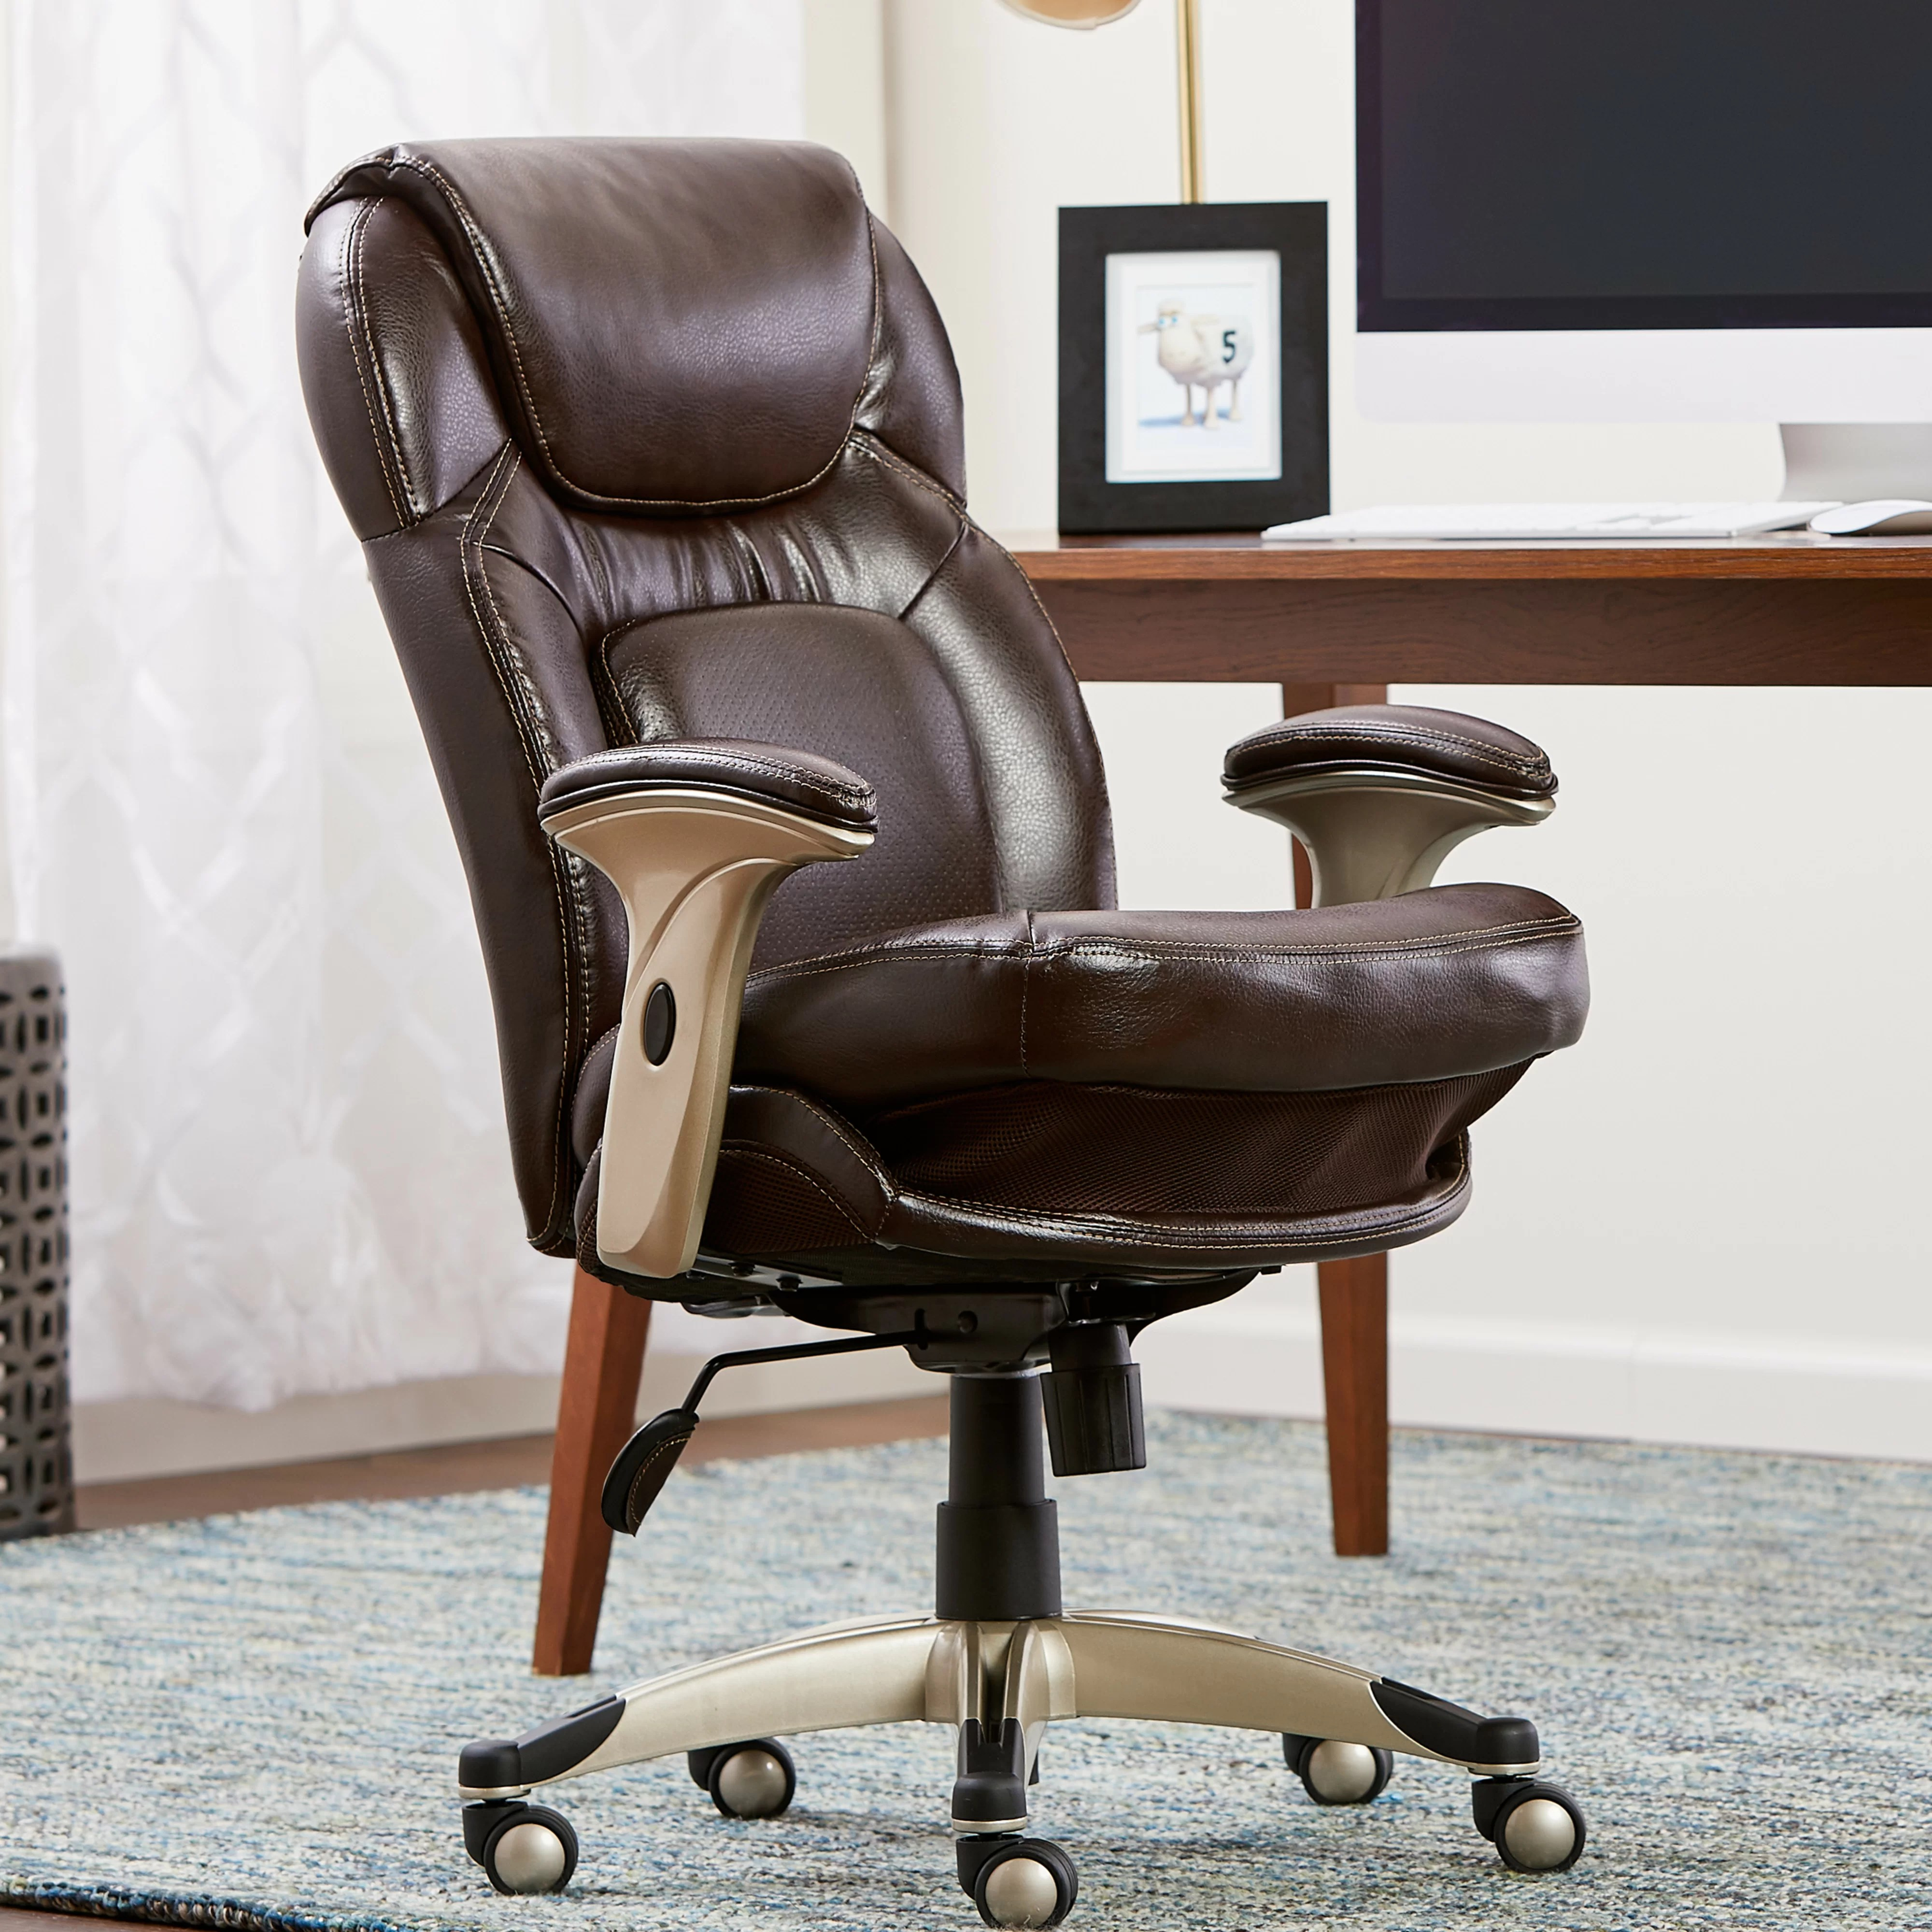 serta office chair 10 year warranty claw foot at home back in motion health and wellness mid desk reviews wayfair